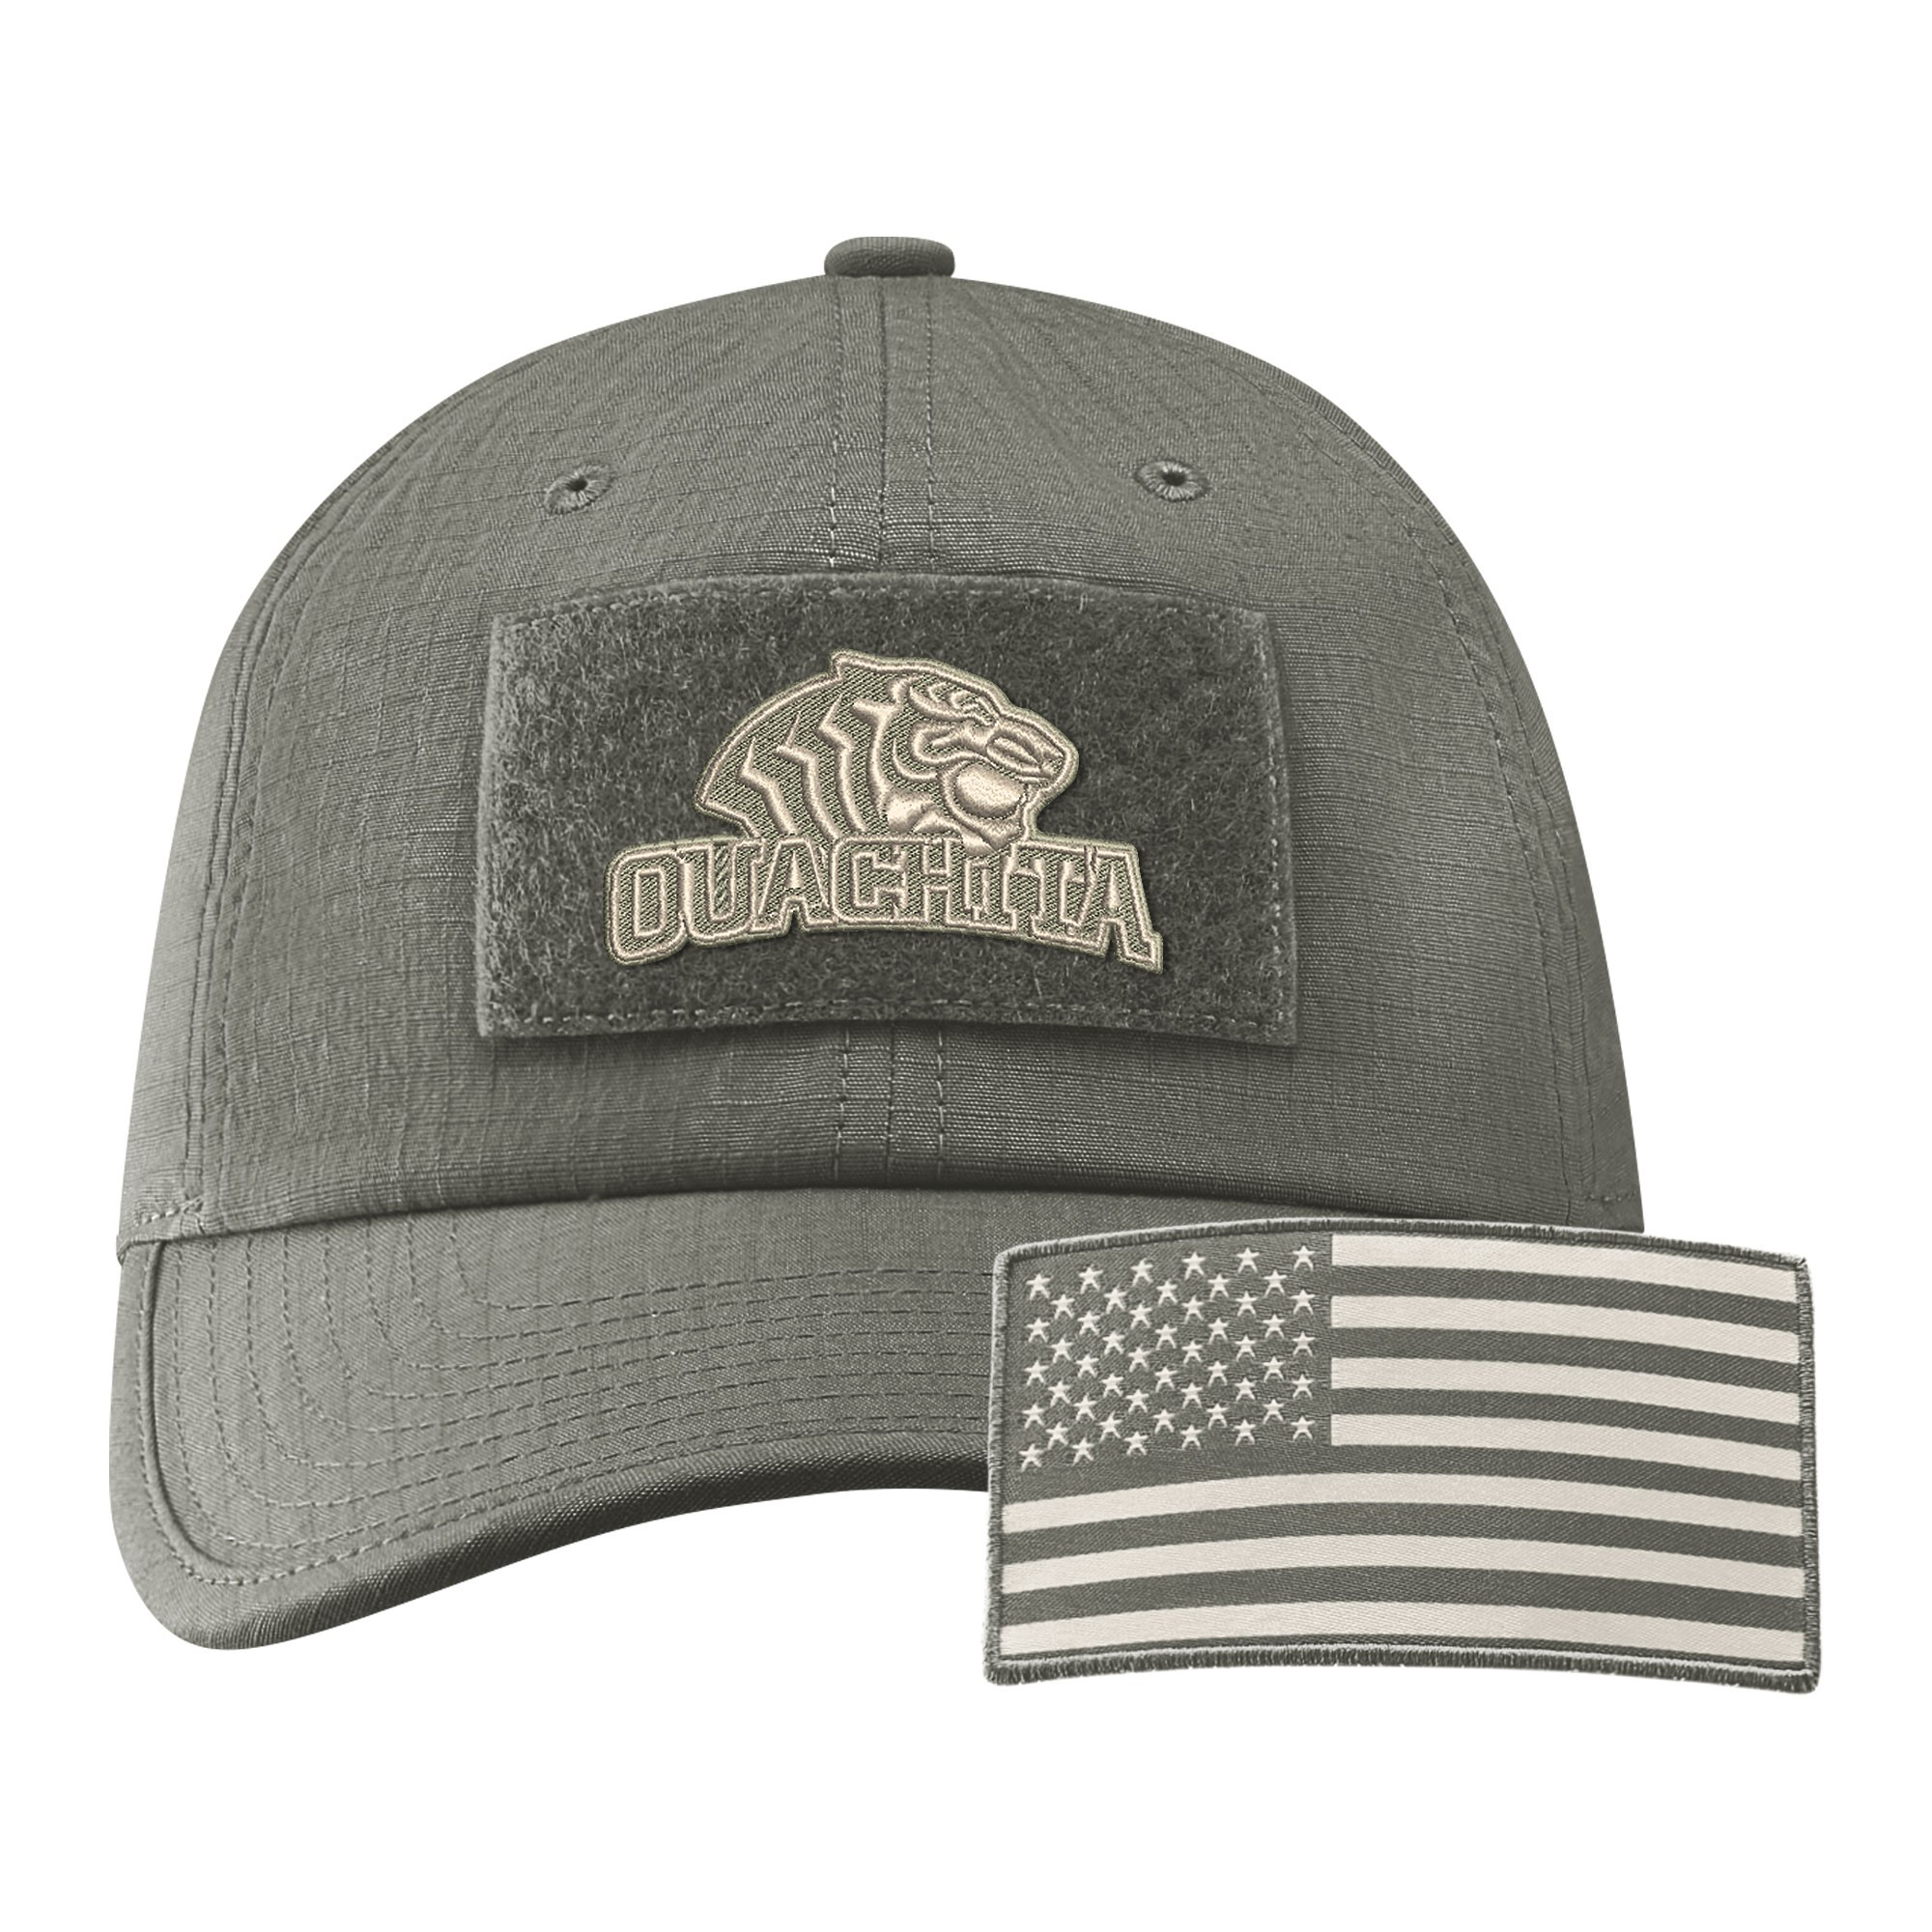 OUACHITA HERITAGE 86 TACTICAL HAT